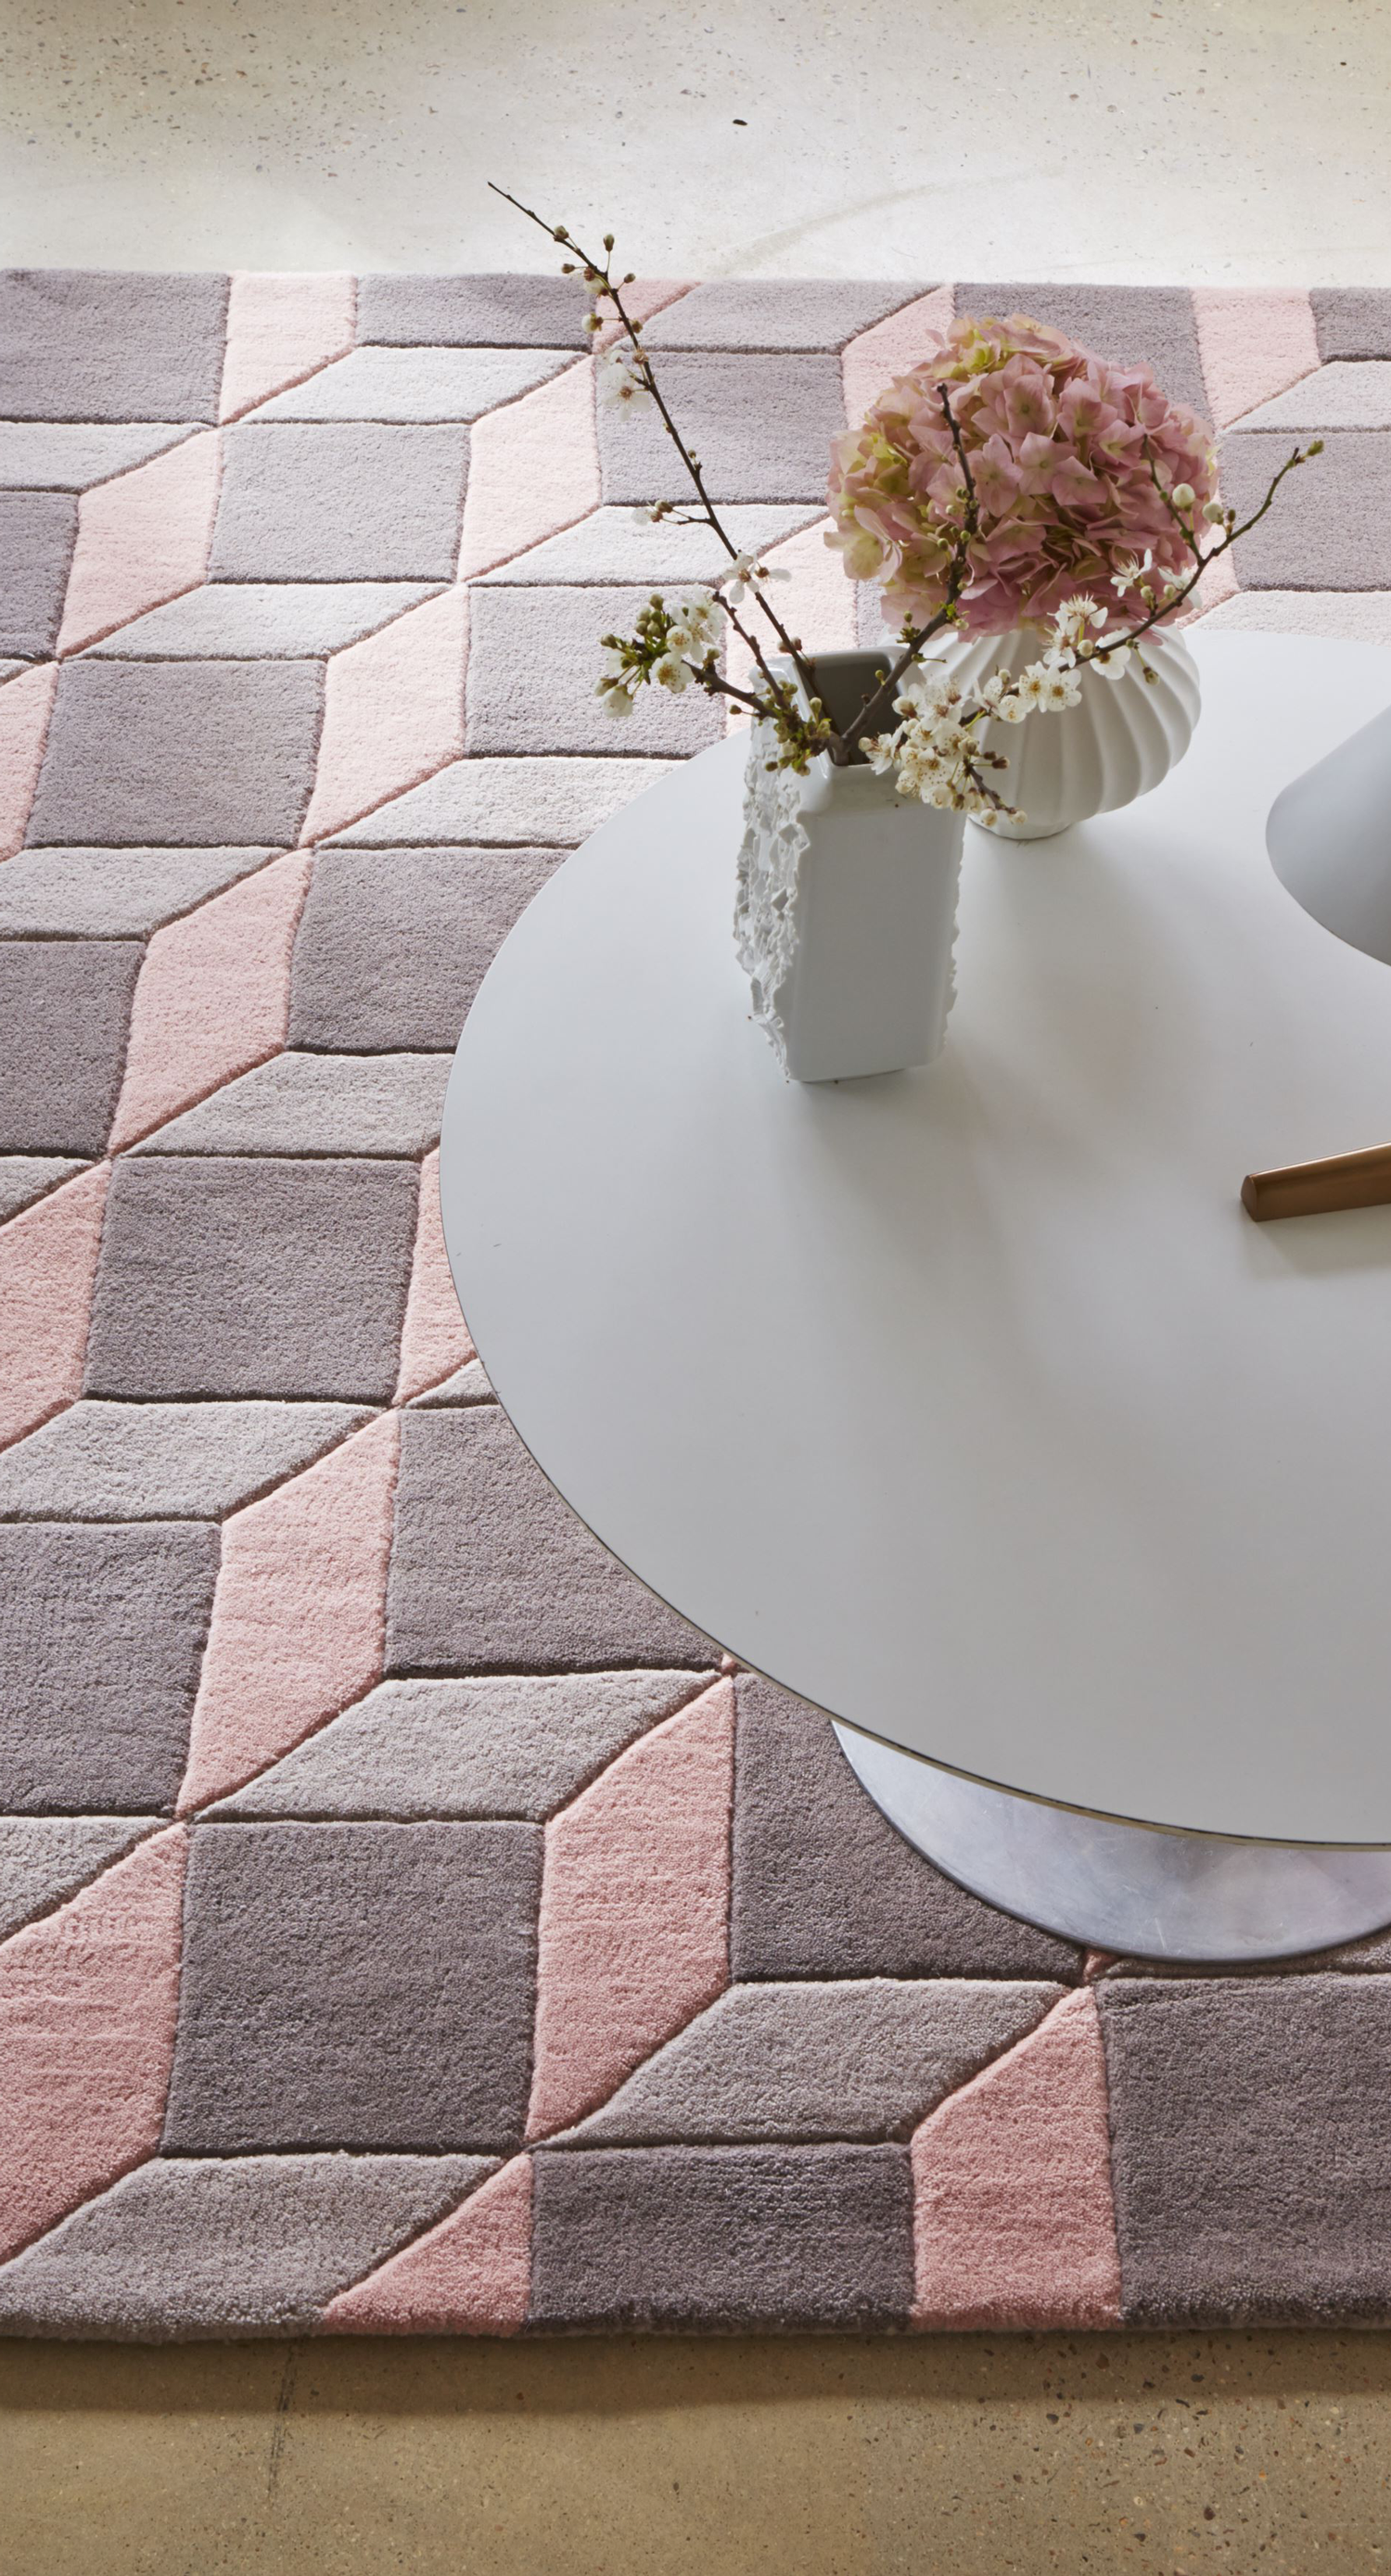 Geometric Hand Tufted Pinkgrey Area Rug Apartment Living